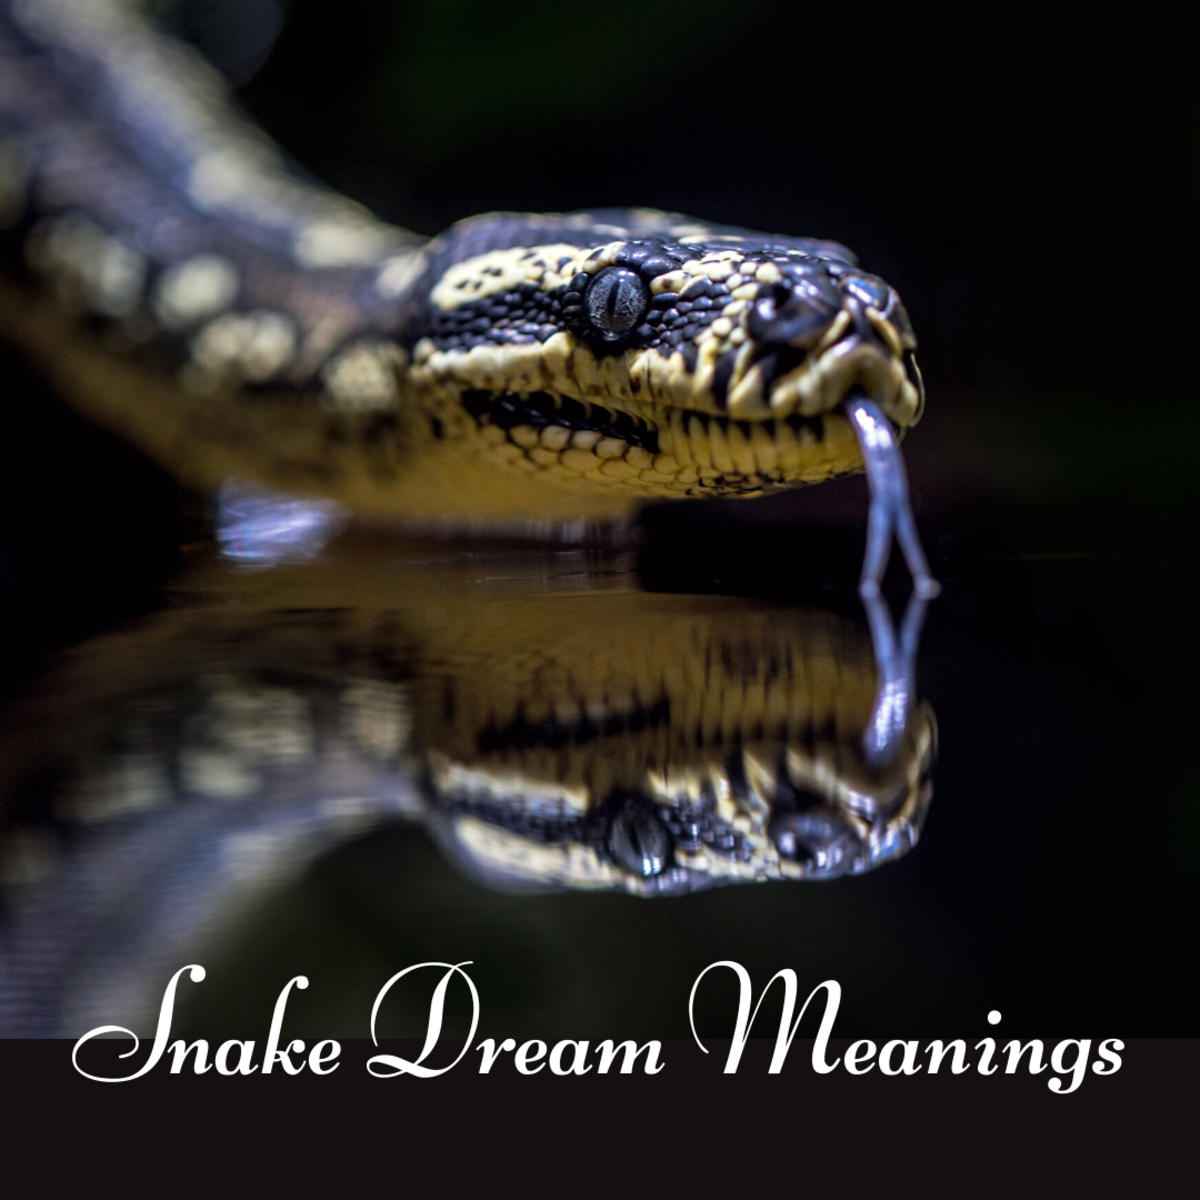 What does it mean if a snake appears in your dream?